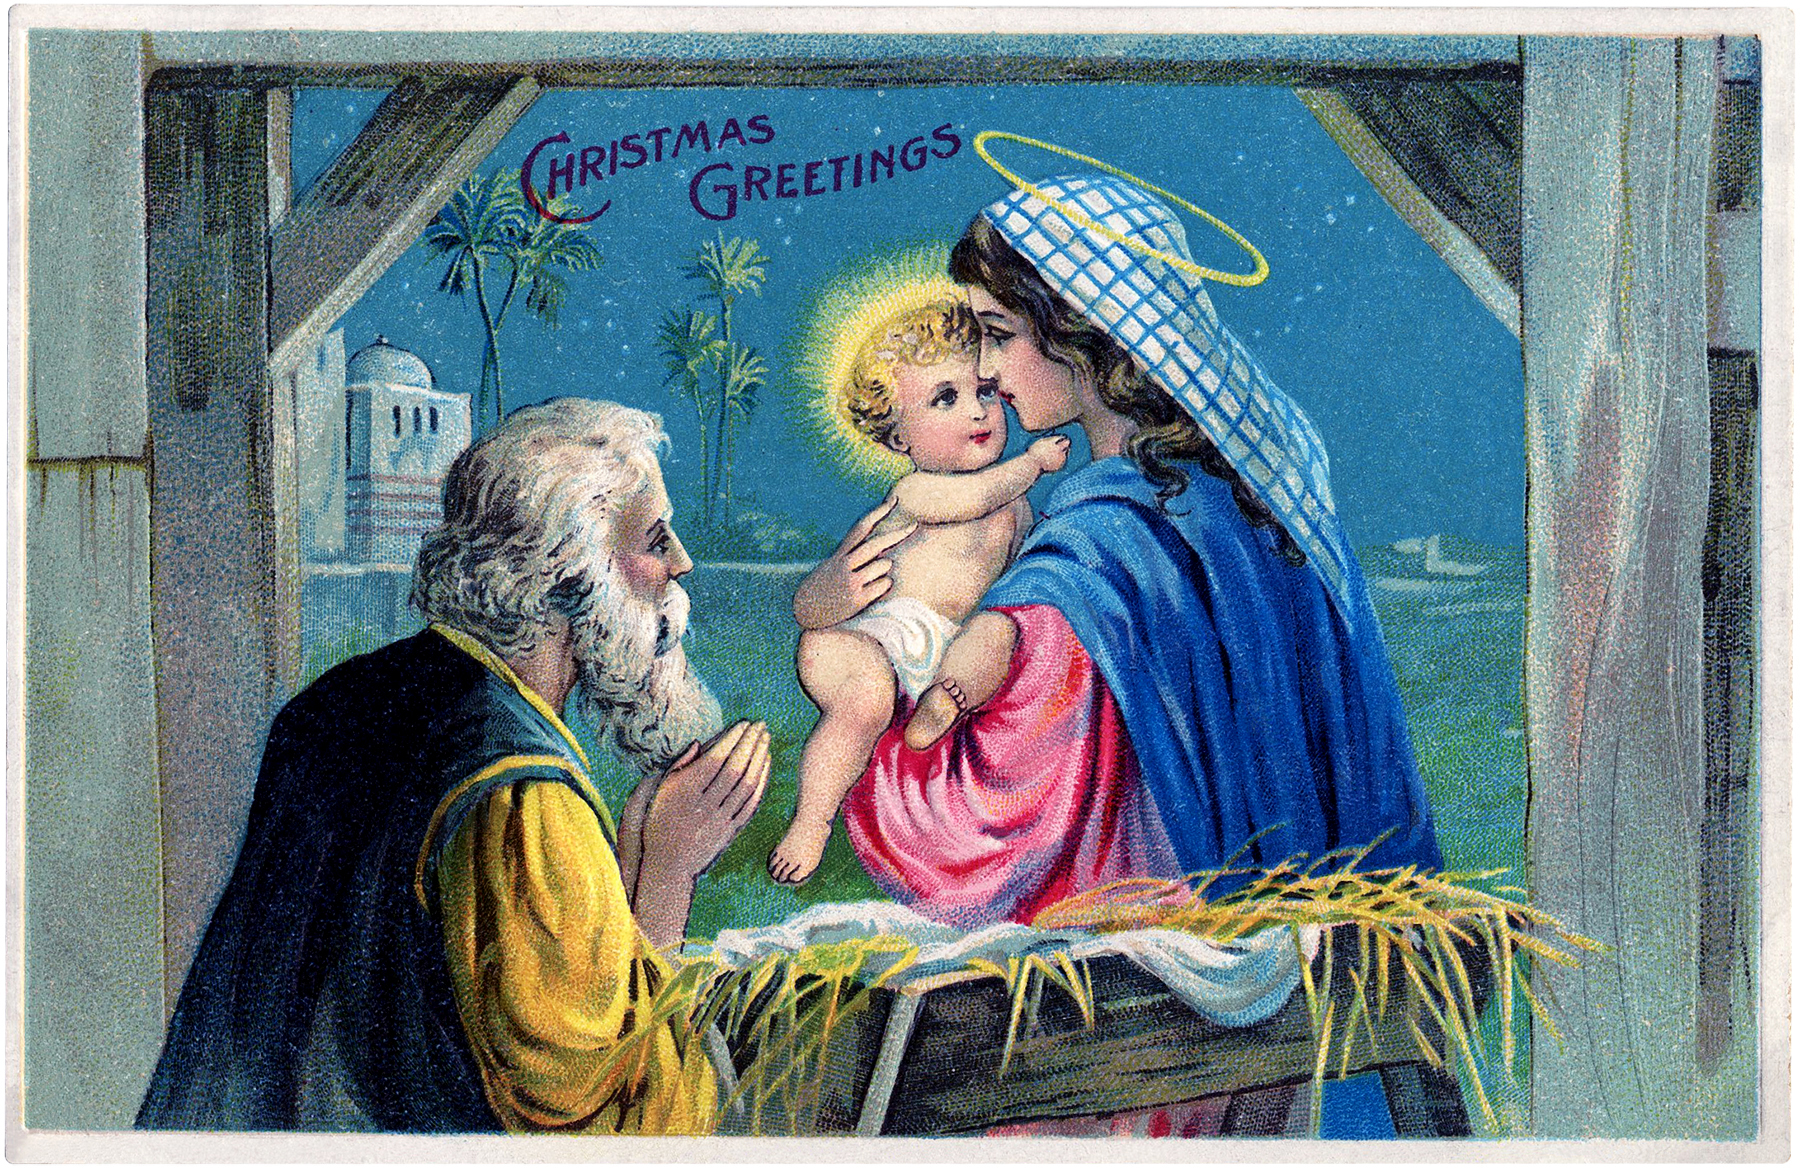 Christmas pictures of baby jesus in the manger